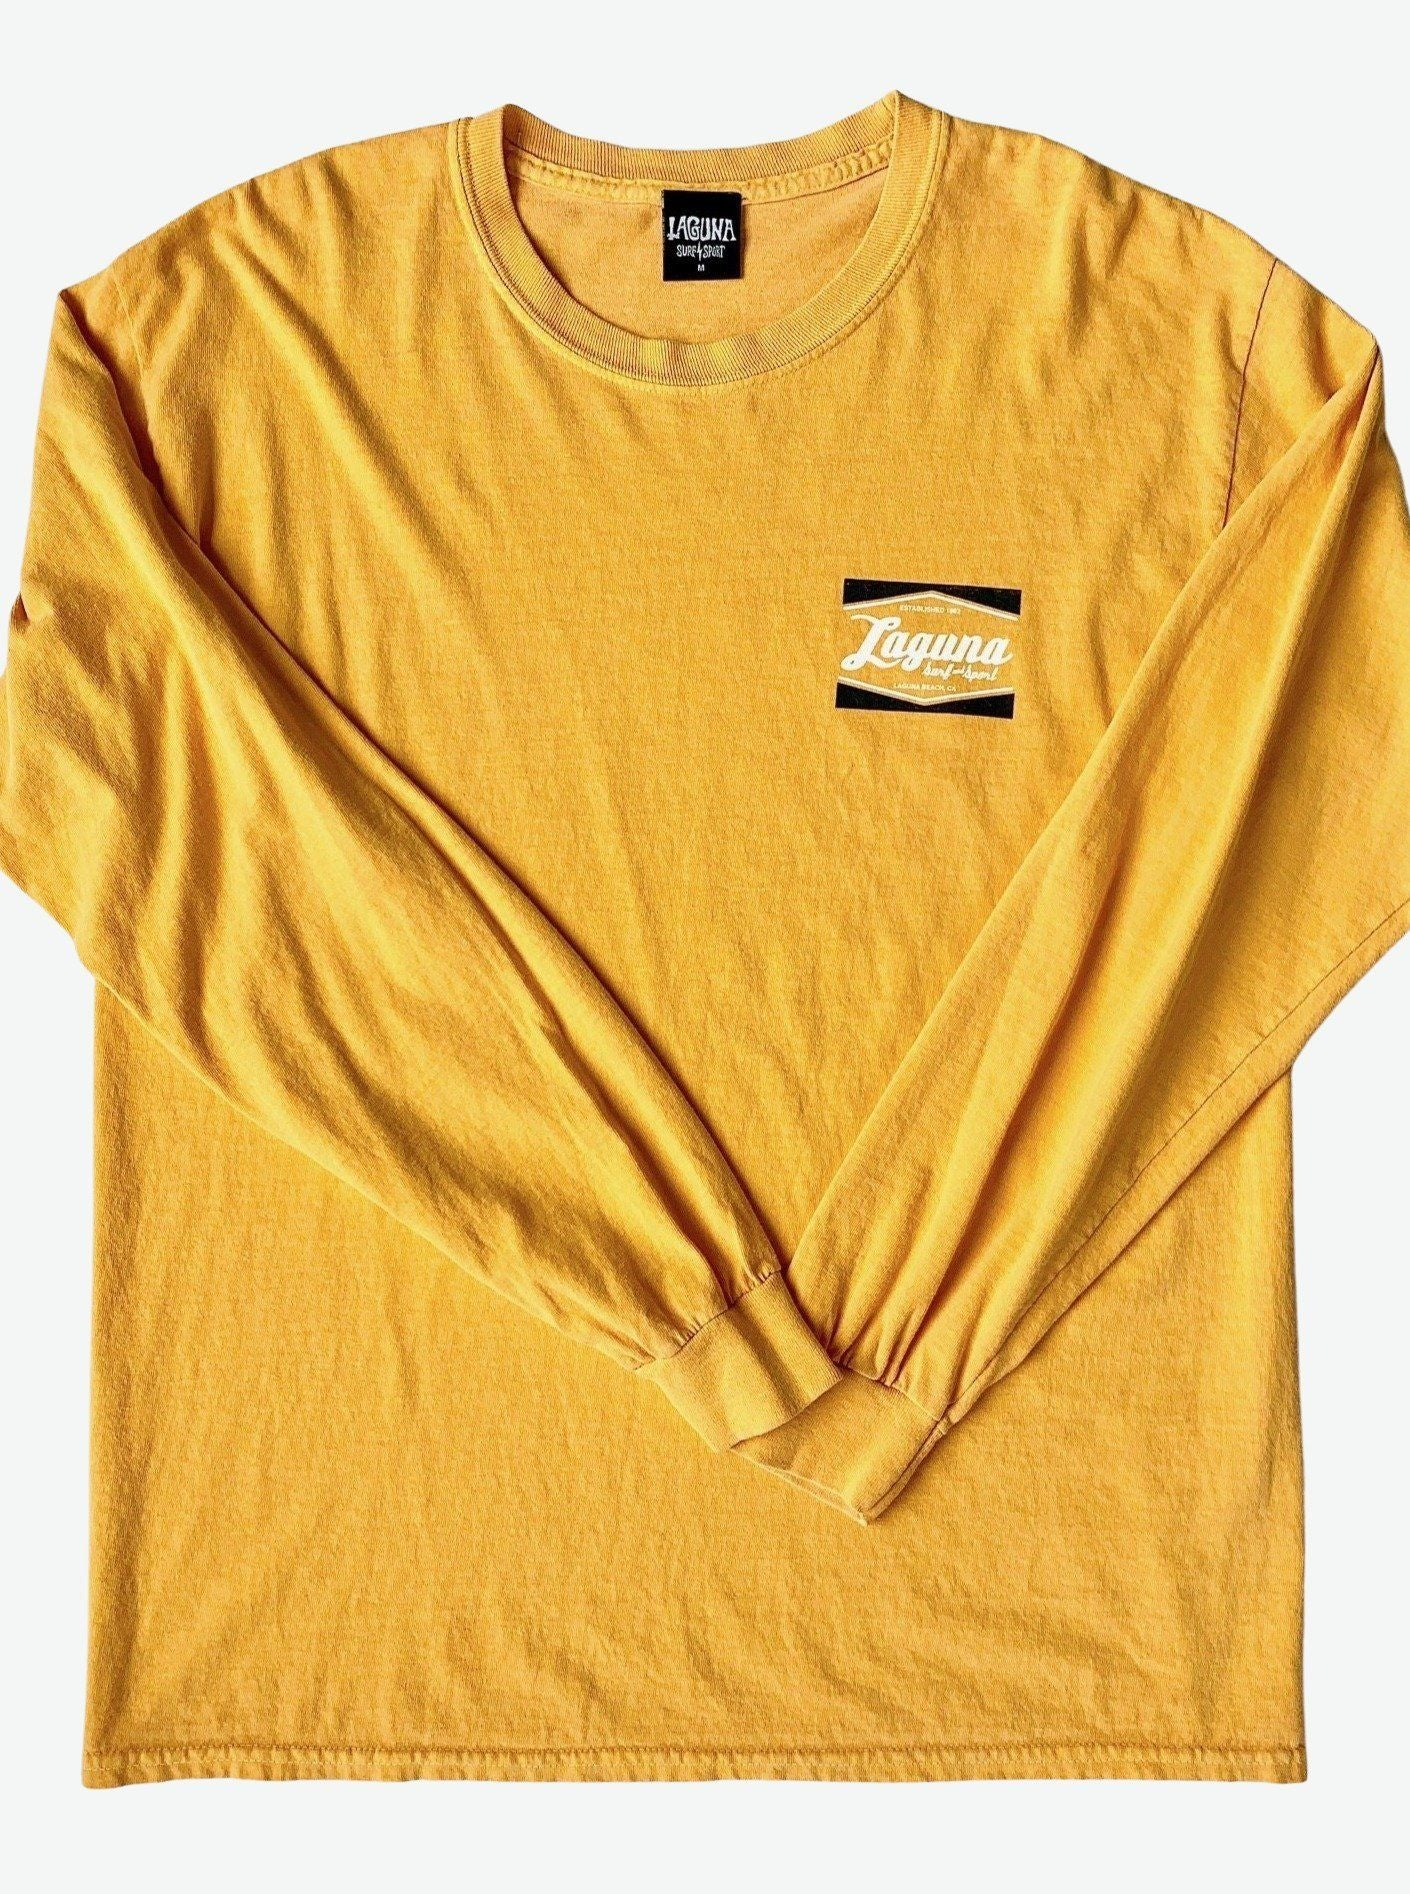 LS&S CLASSIC BOX  Mens Pigment Long Sleeve Tee  (More Colors Available)  - Laguna Surf & Sport